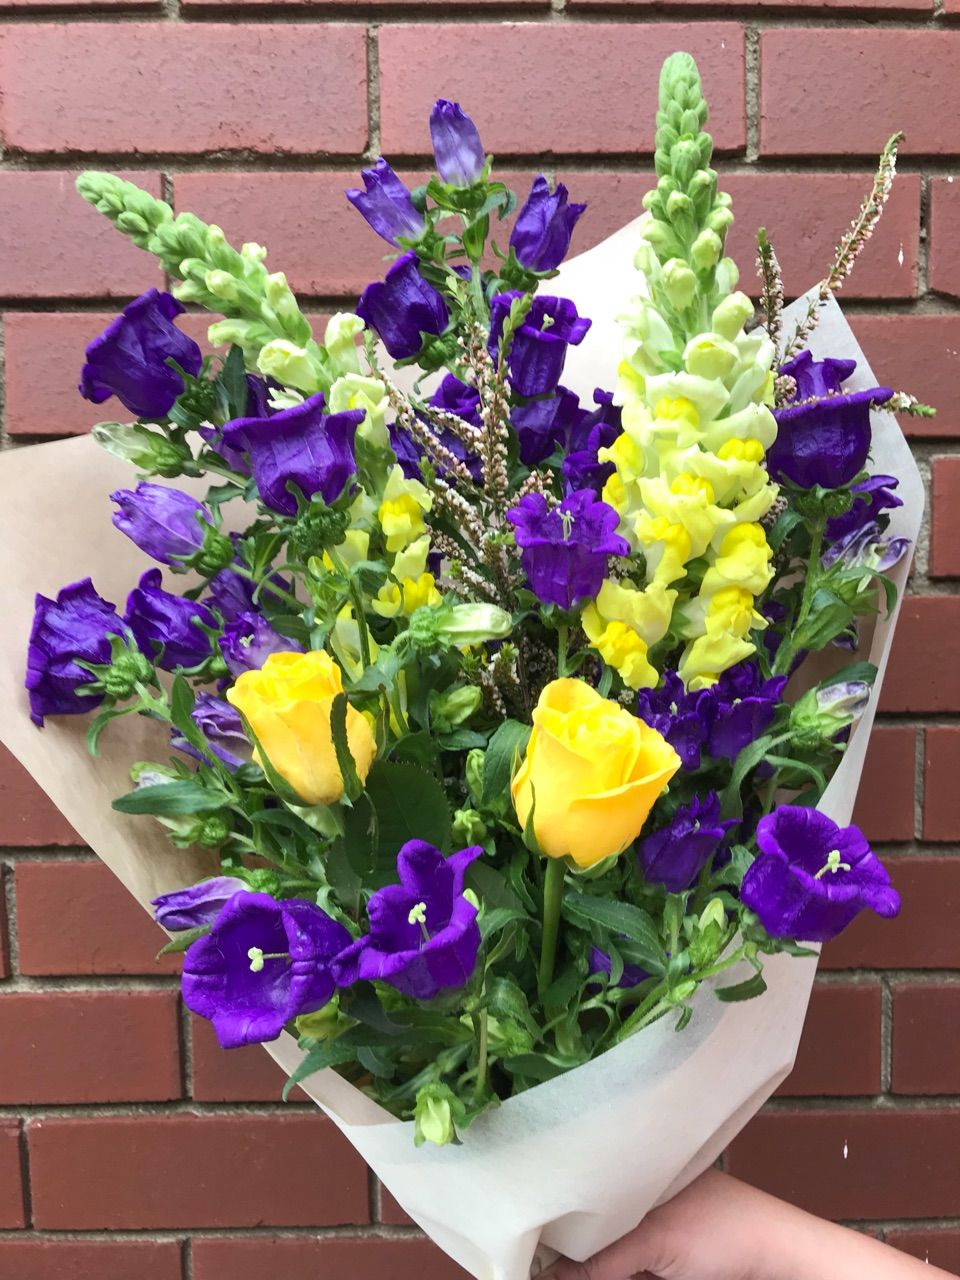 Melbourne Fresh flowers is a best flower delivery service